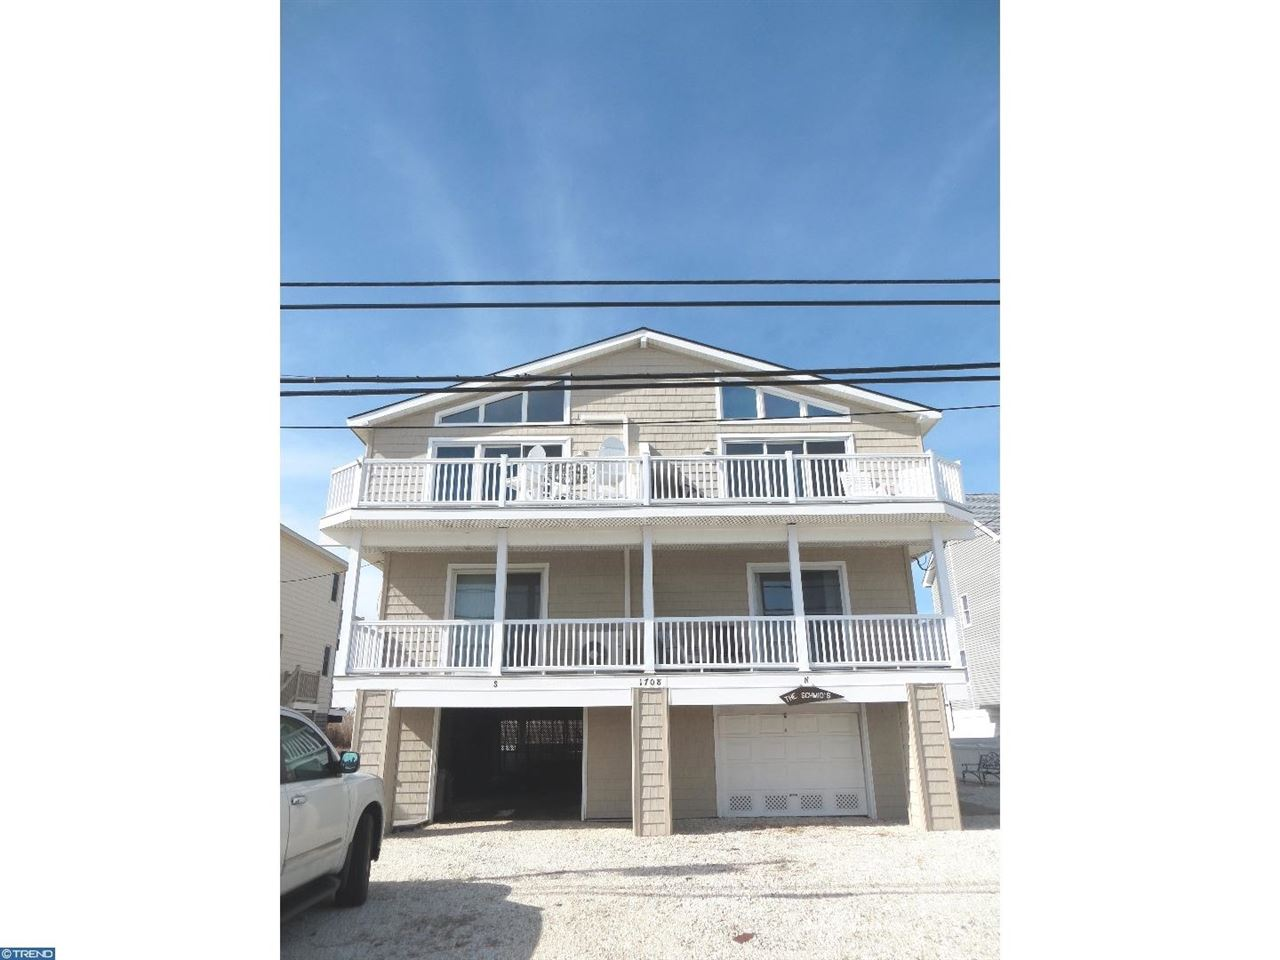 1708 landis, Sea Isle City, NJ 08243